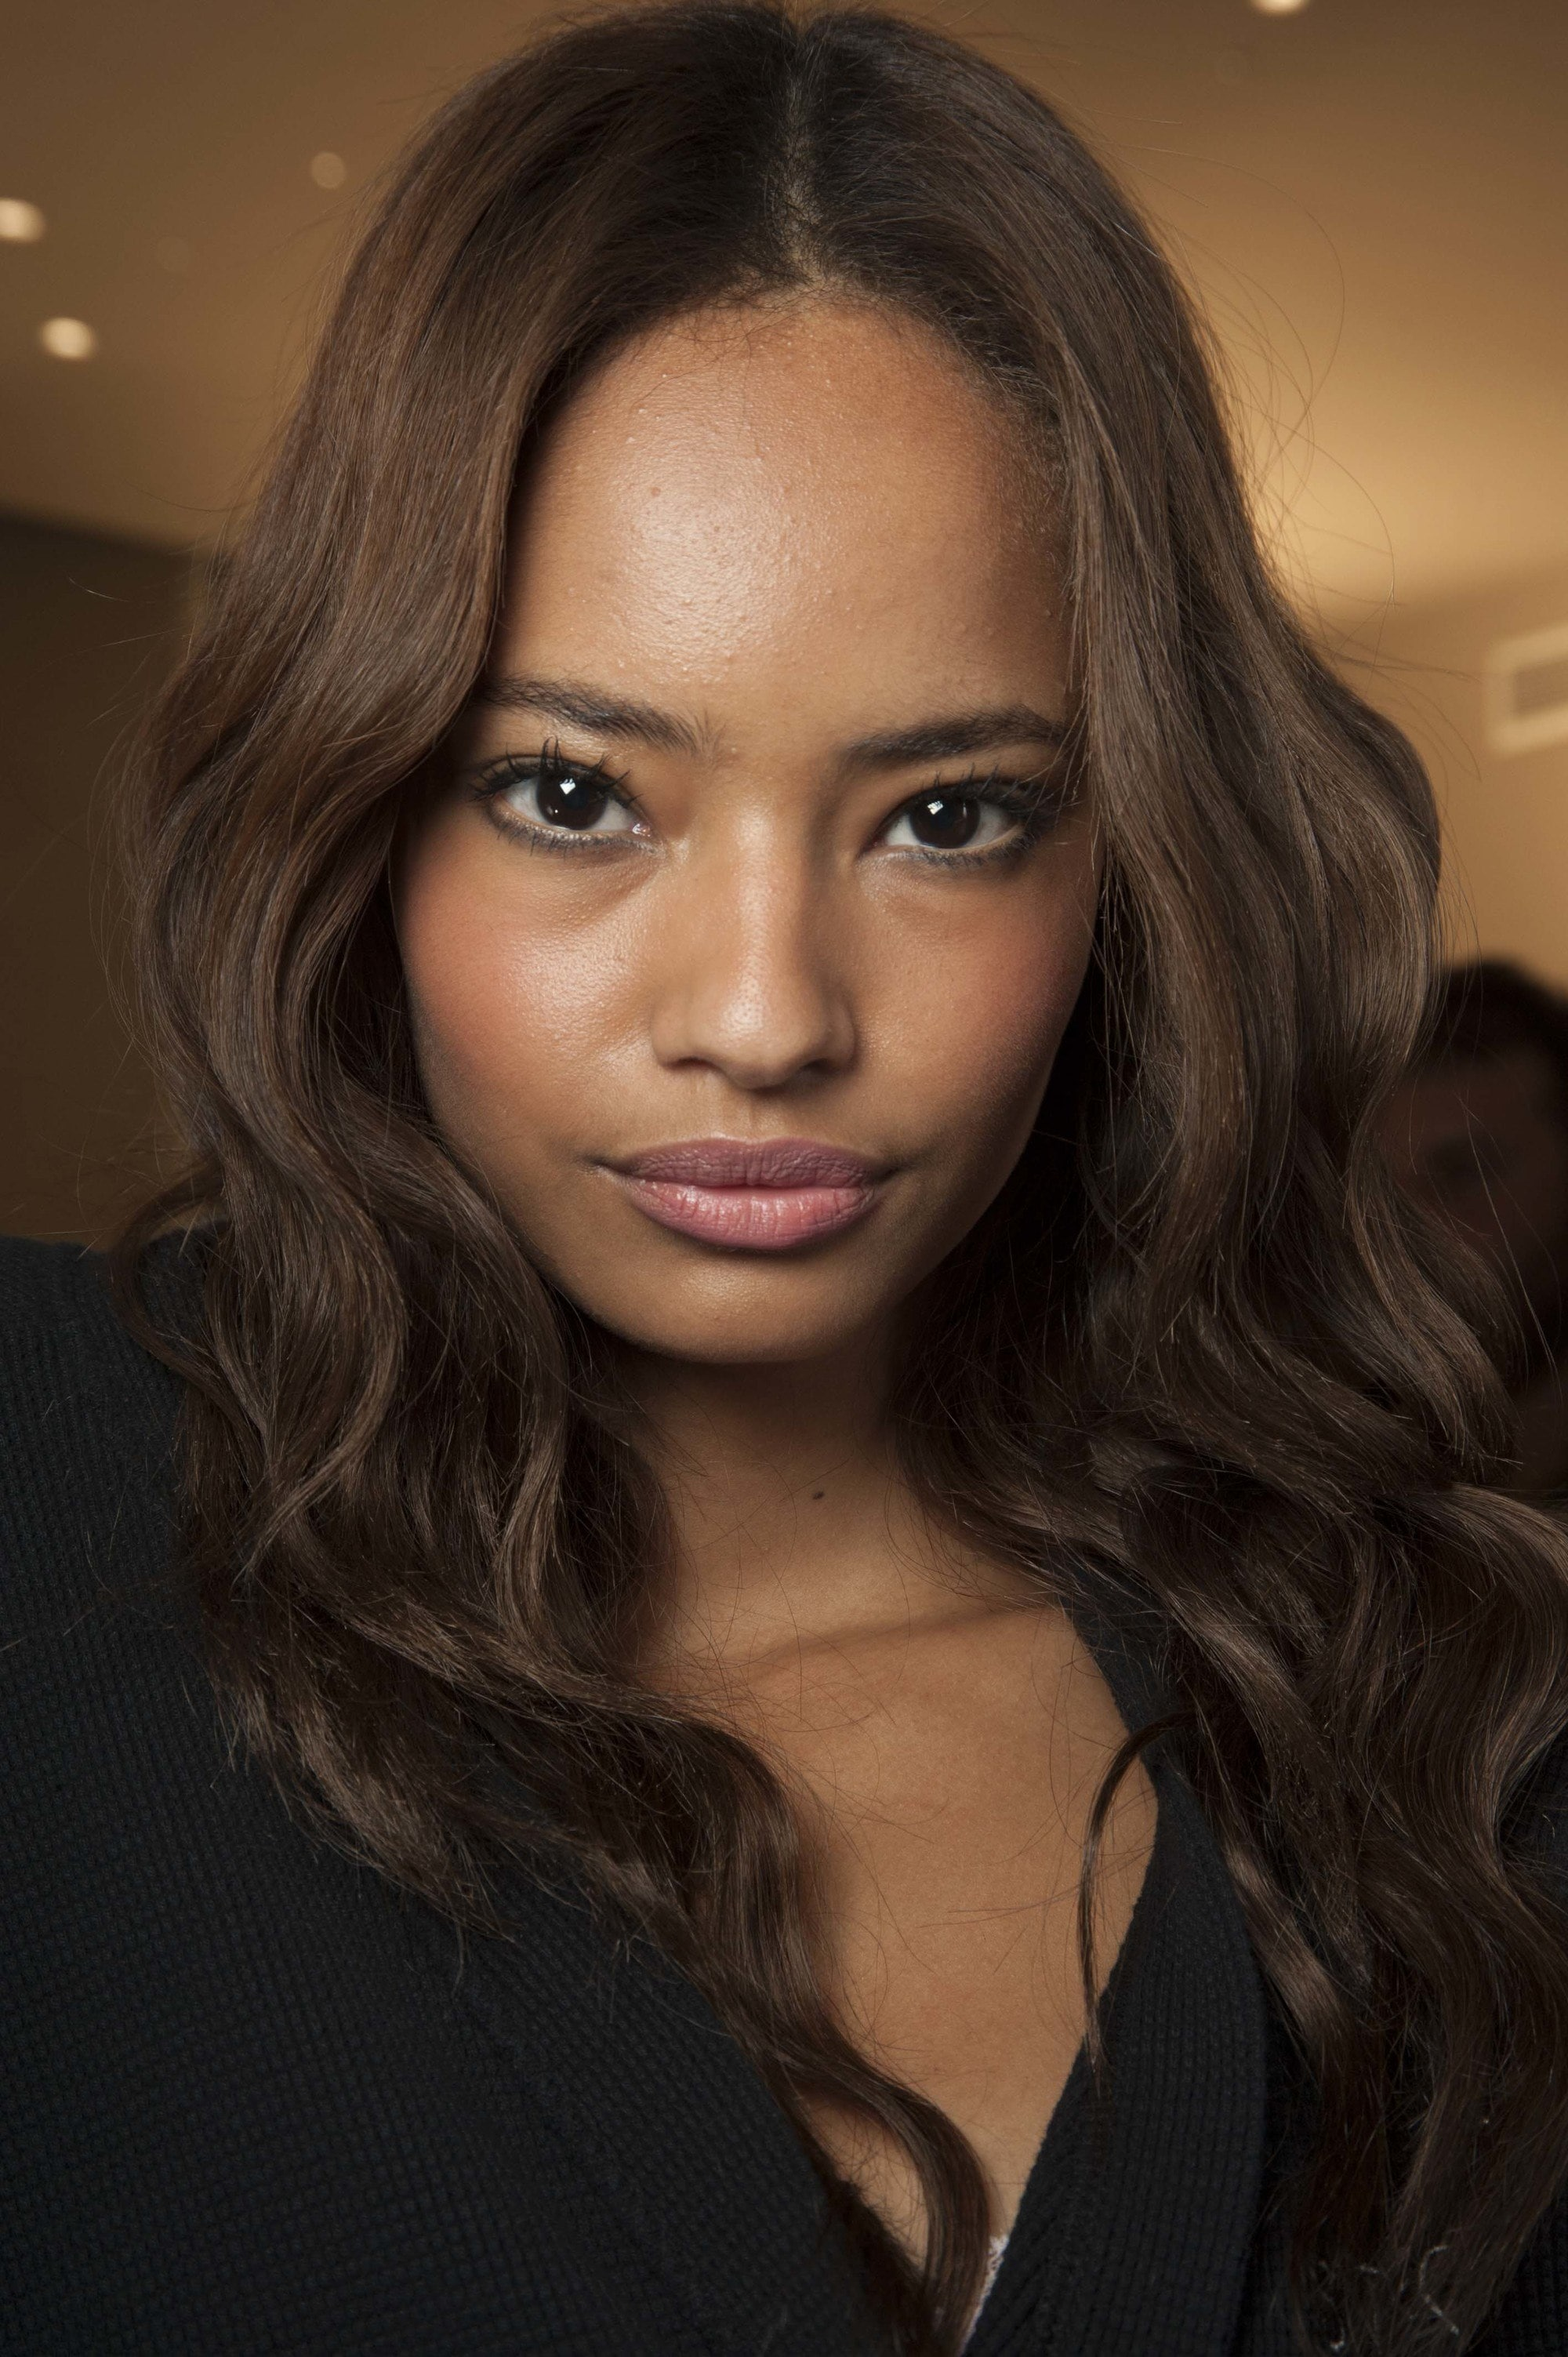 Hair colors for morena: Closeup shot of a woman with brown skin and long espresso hair